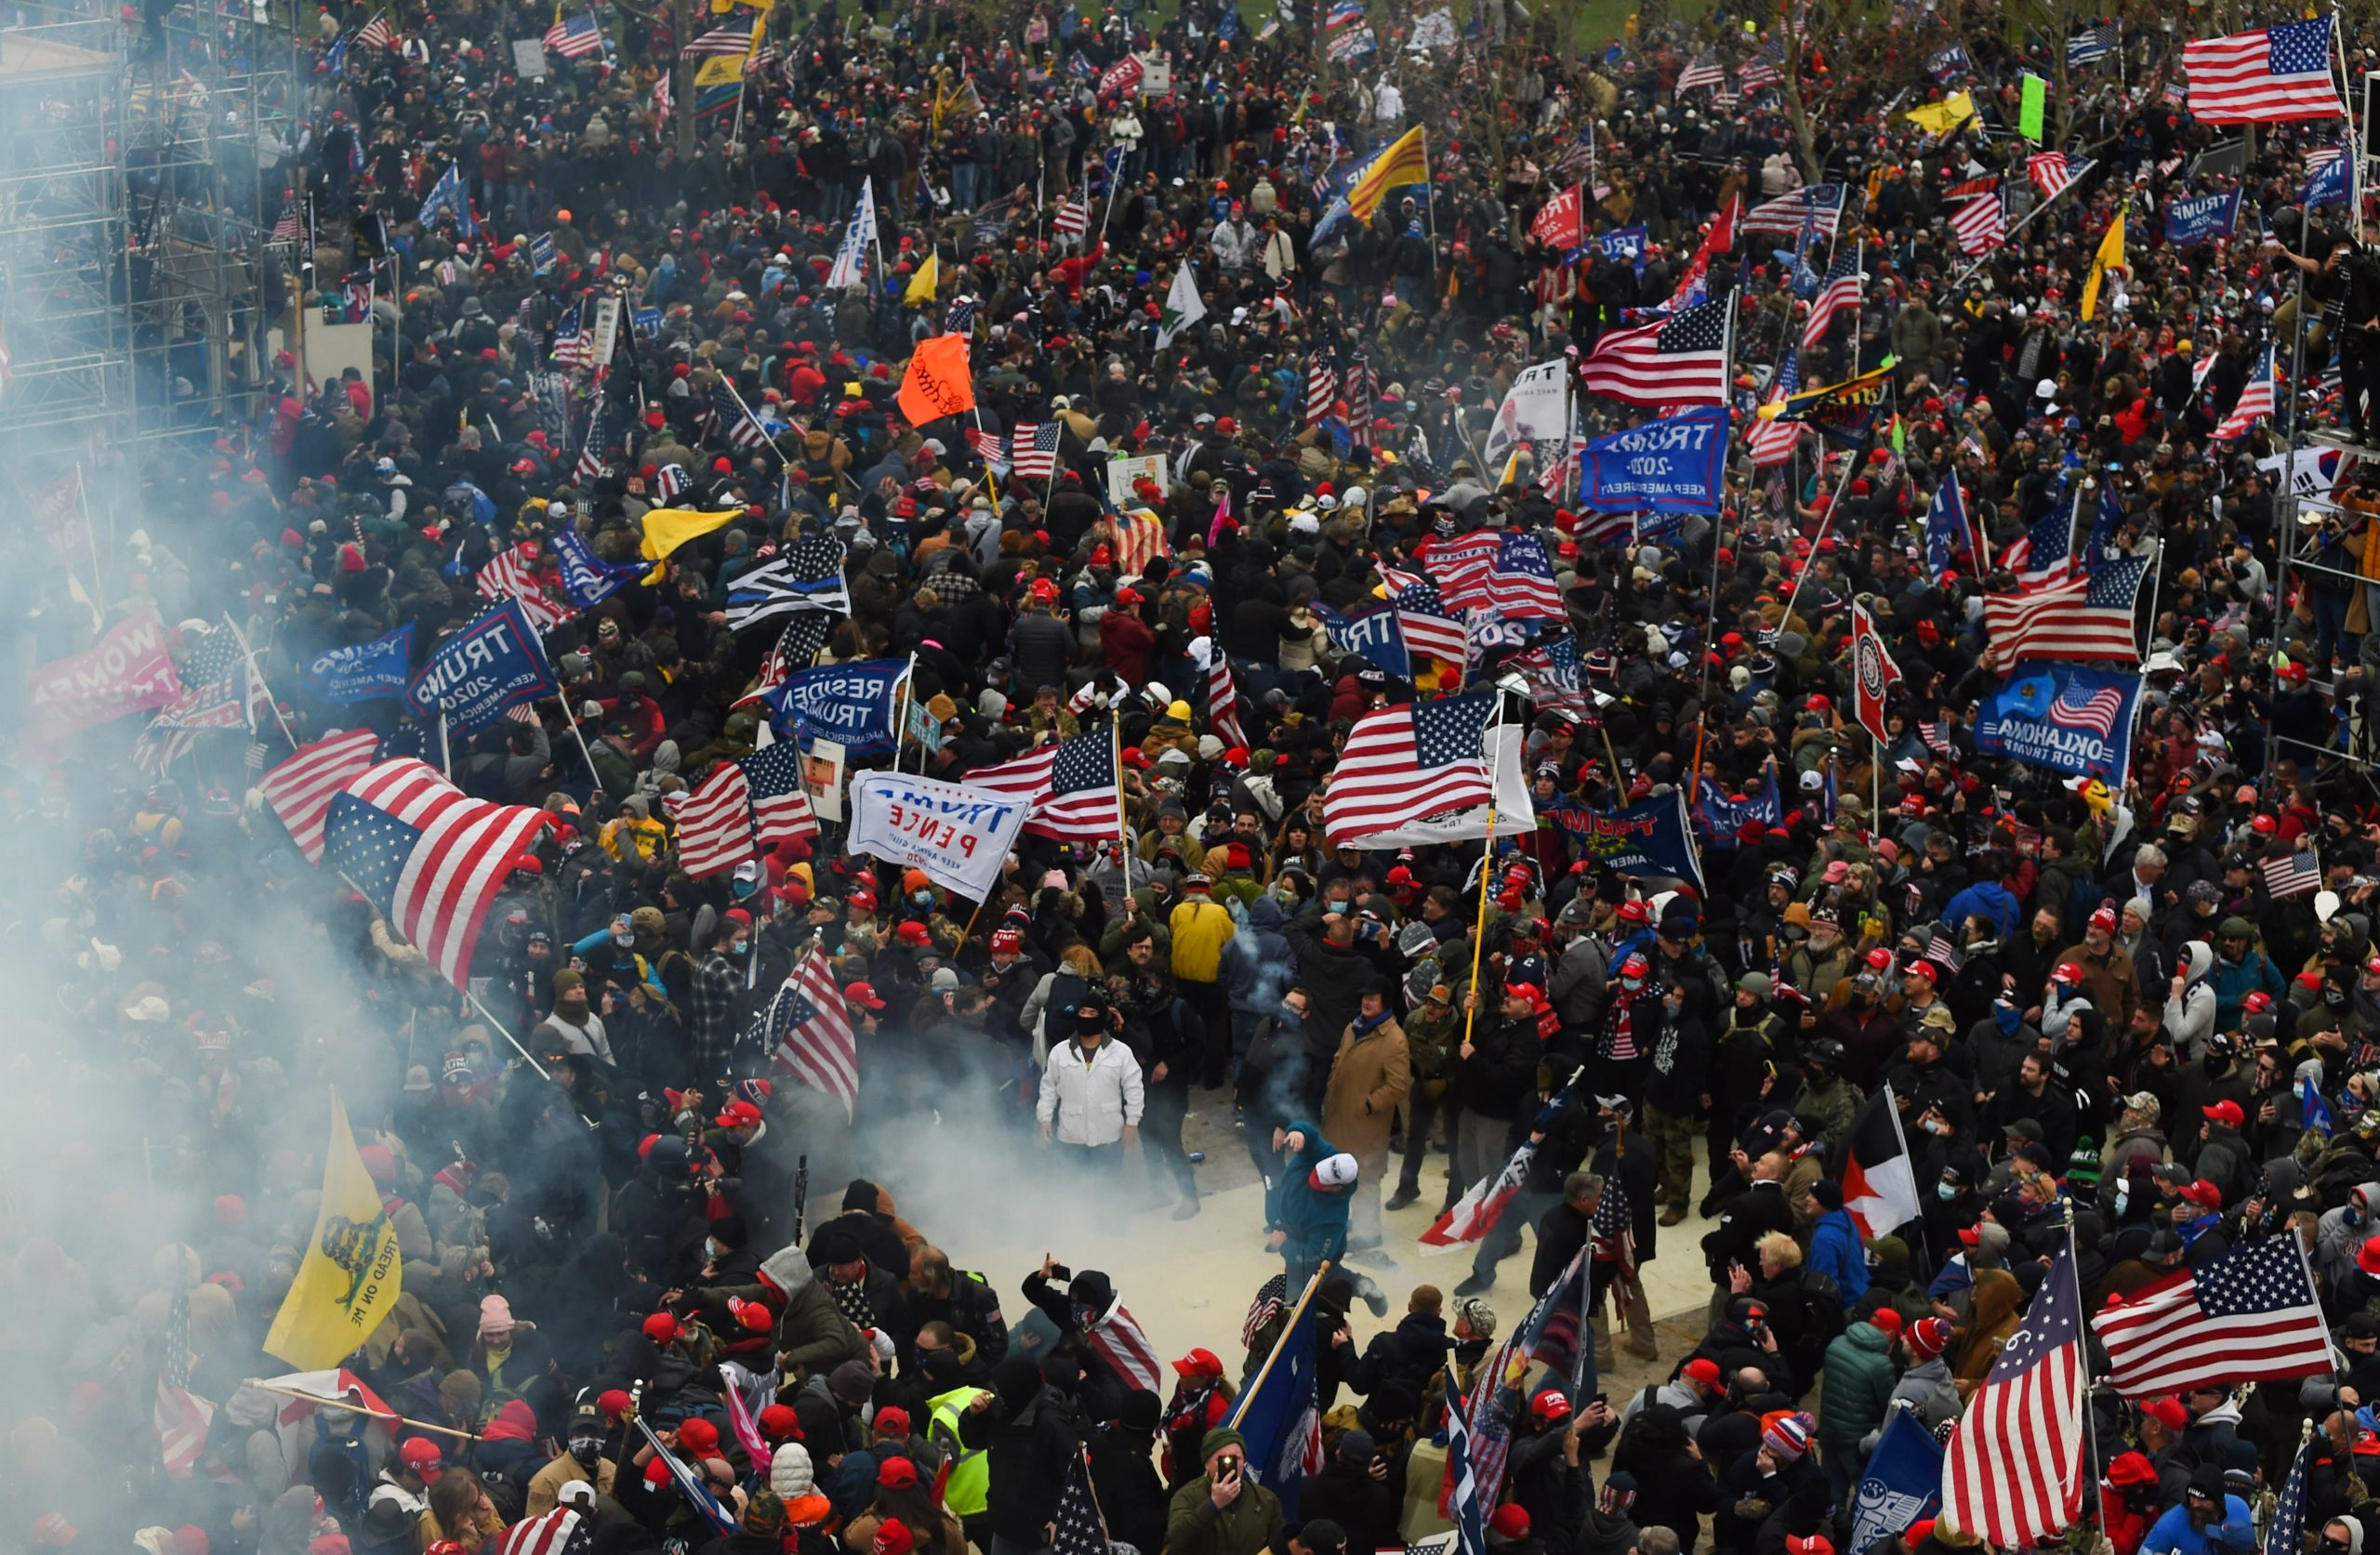 Trump supporters clash with police and security forces as they storm the US Capitol in Washington D.C on January 6, 2021. - Demonstrators breeched security and entered the Capitol as Congress debated the a 2020 presidential election Electoral Vote Certification. (Photo by Roberto Schmidt/AFP via Getty Images)